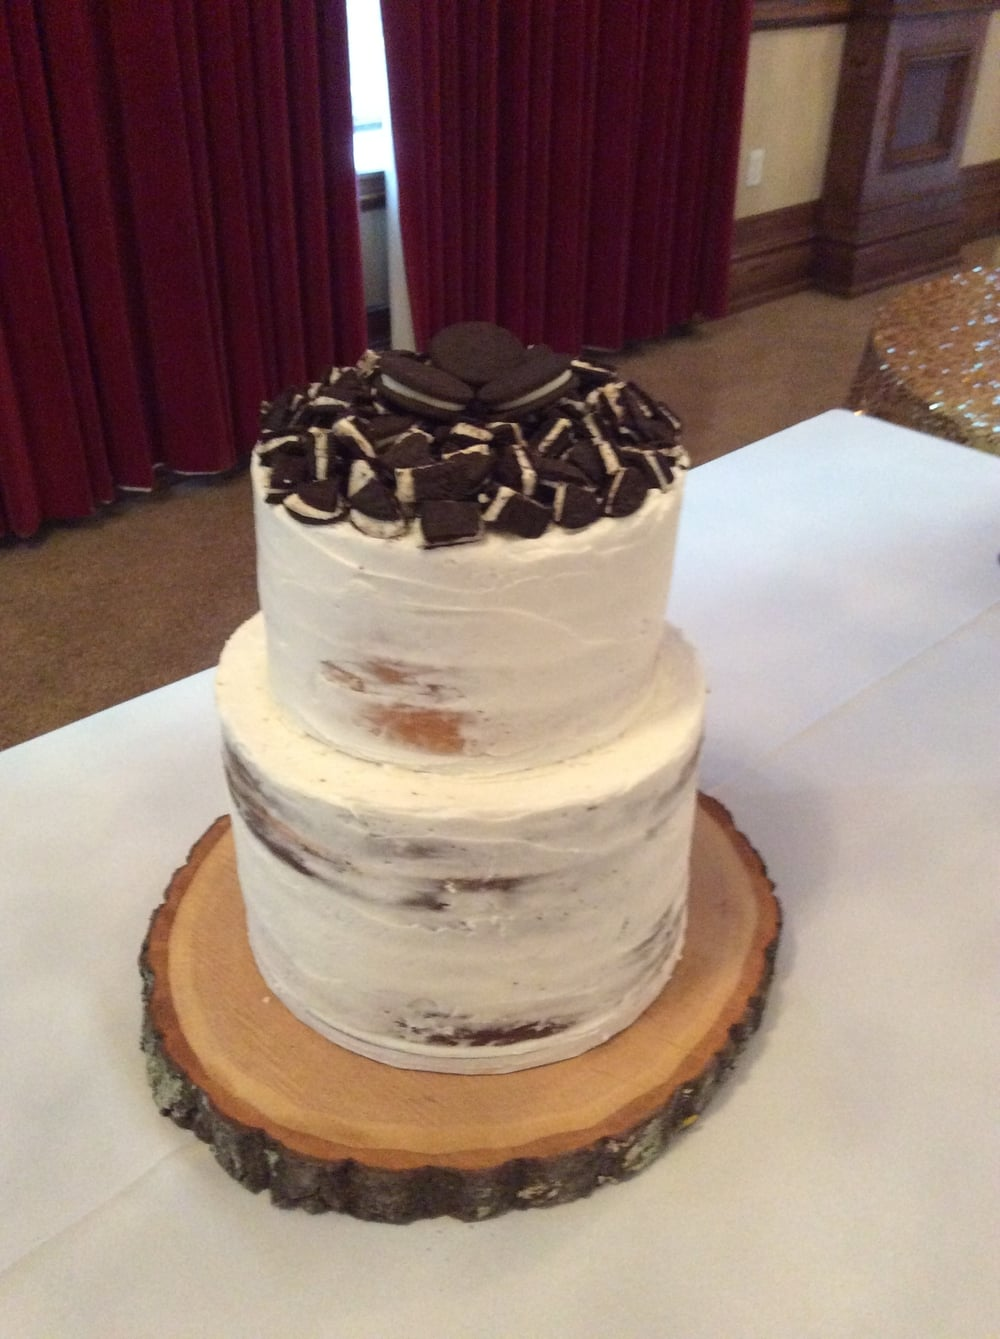 The Groom's Cake had a Cookies and Crème tier over a tier of Double fudge.